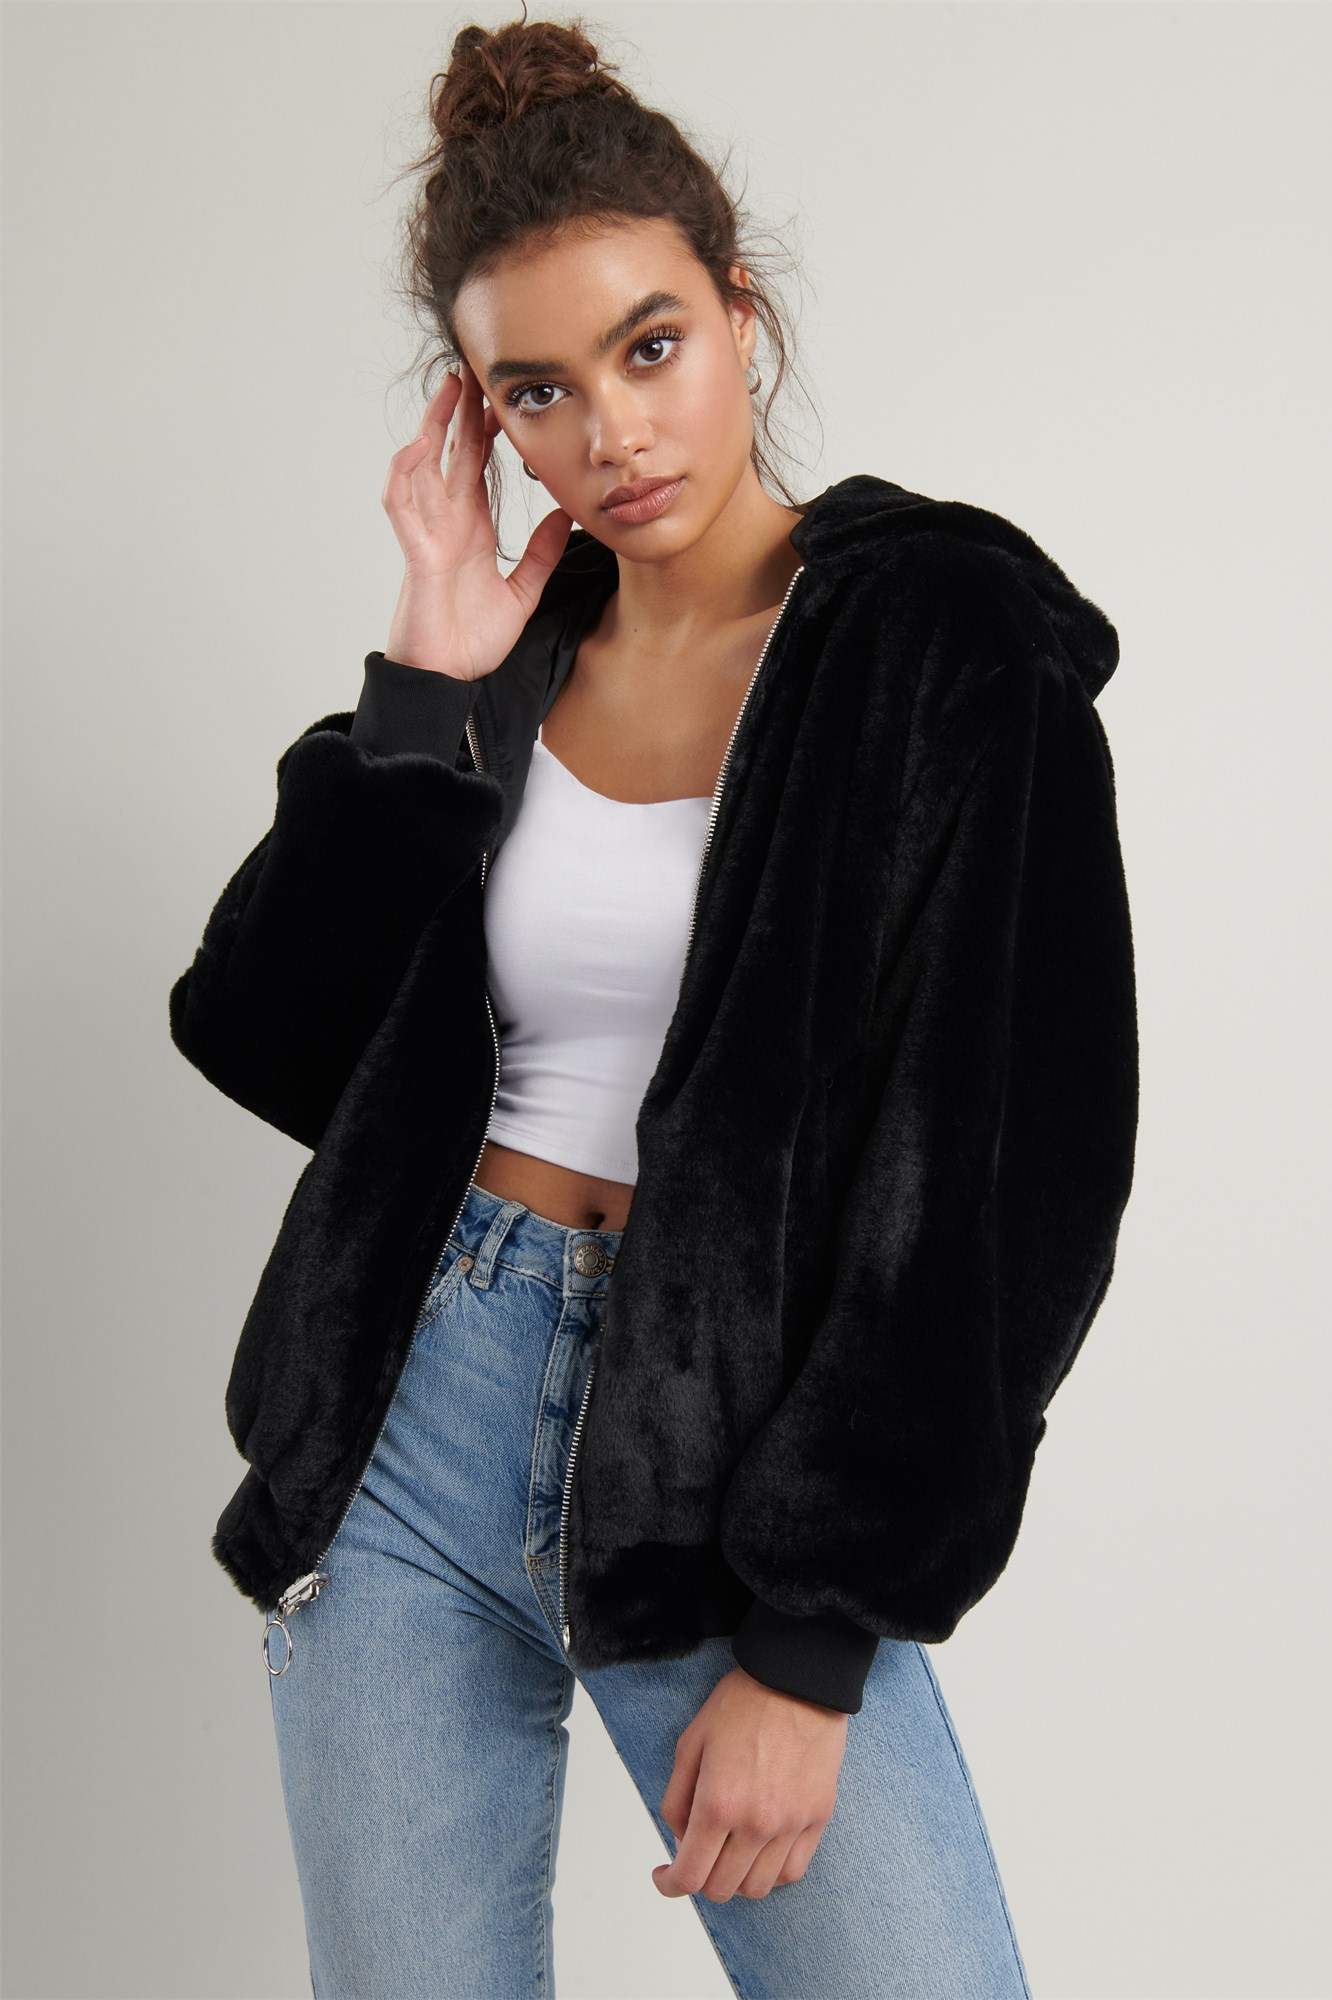 Image 6 of The Two-Faced Reversible Bomber